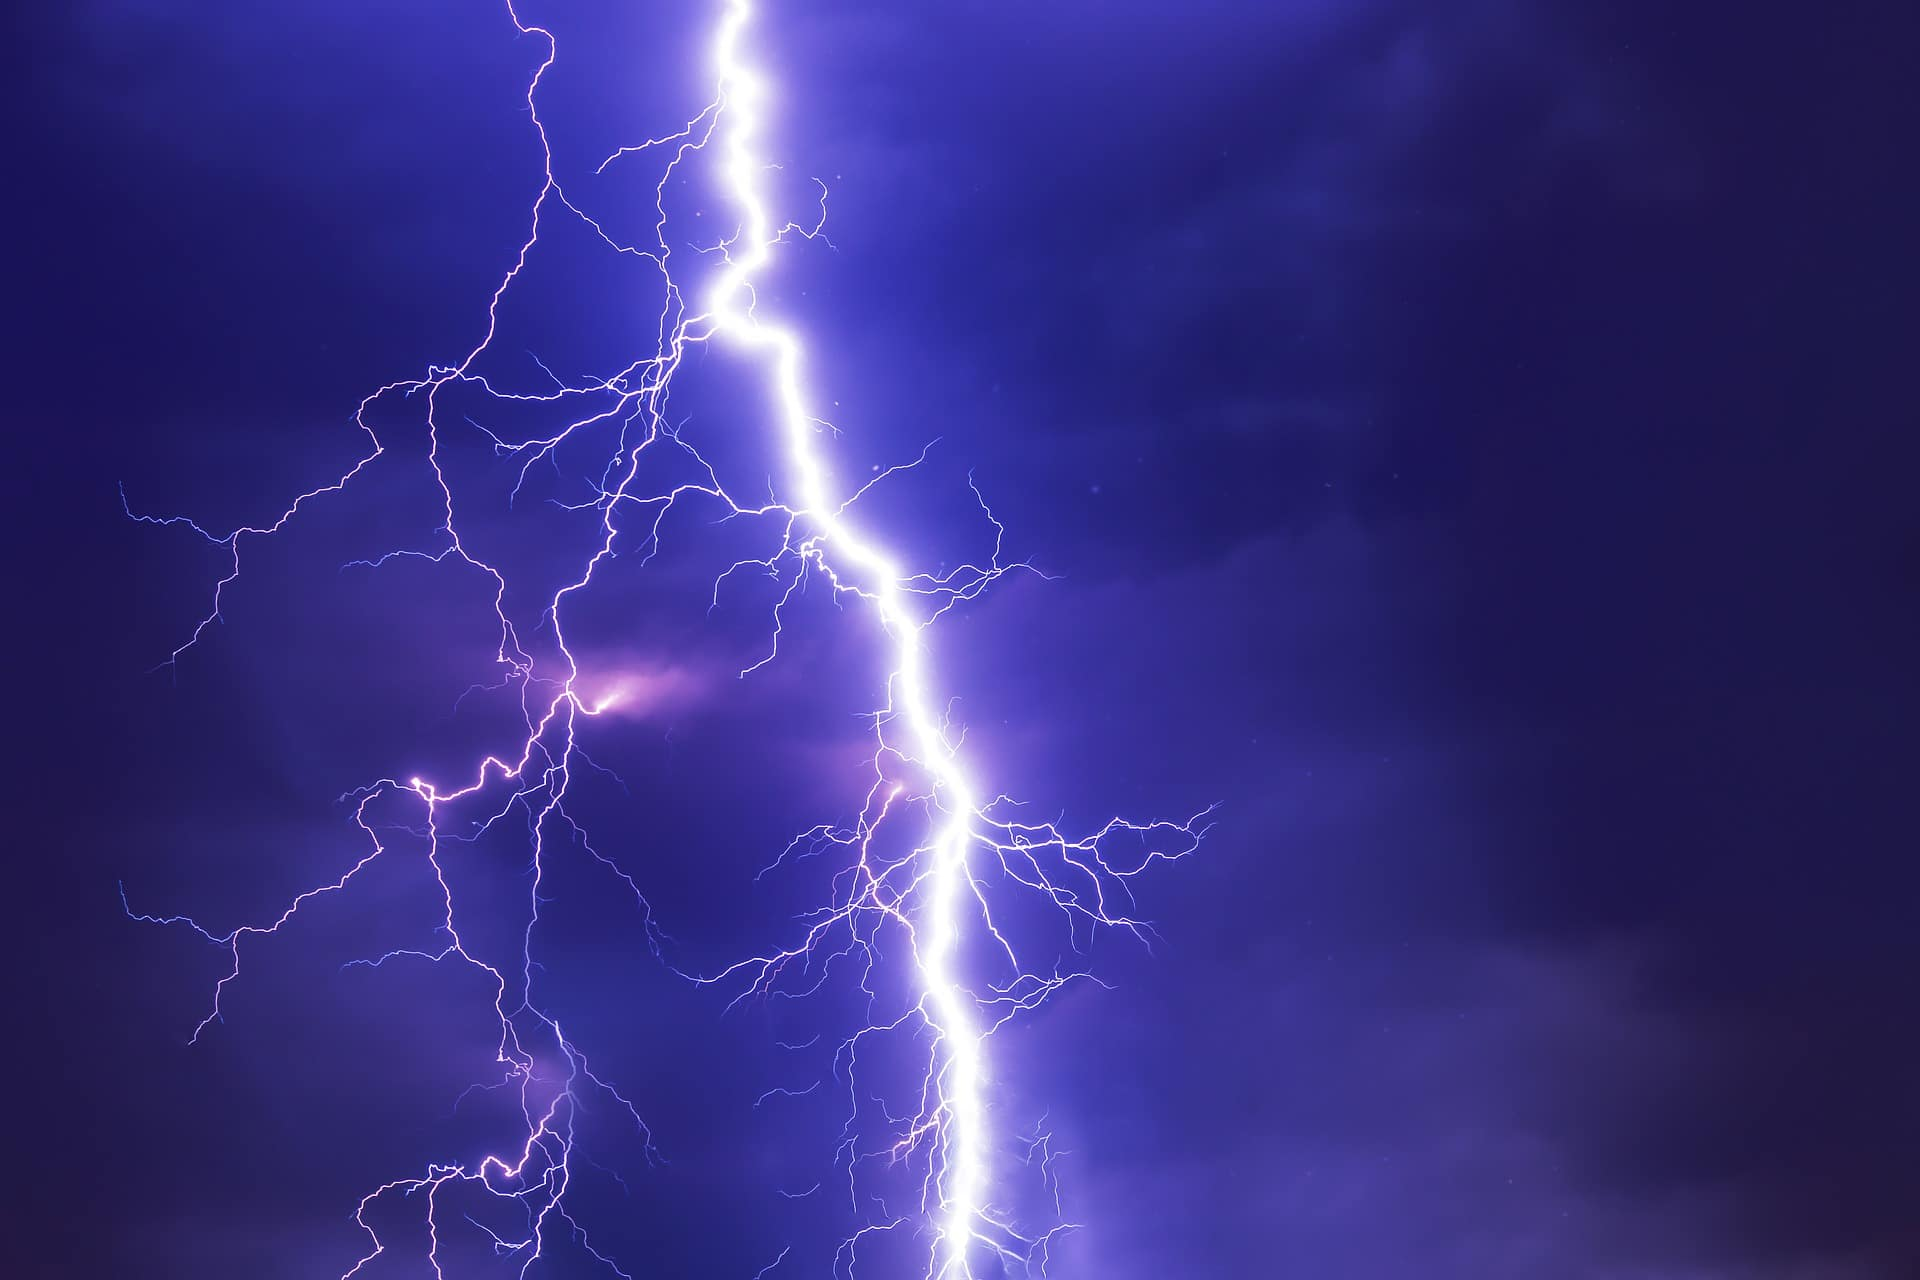 MIT Researchers Developing BTC Lightning Network With Smart ...